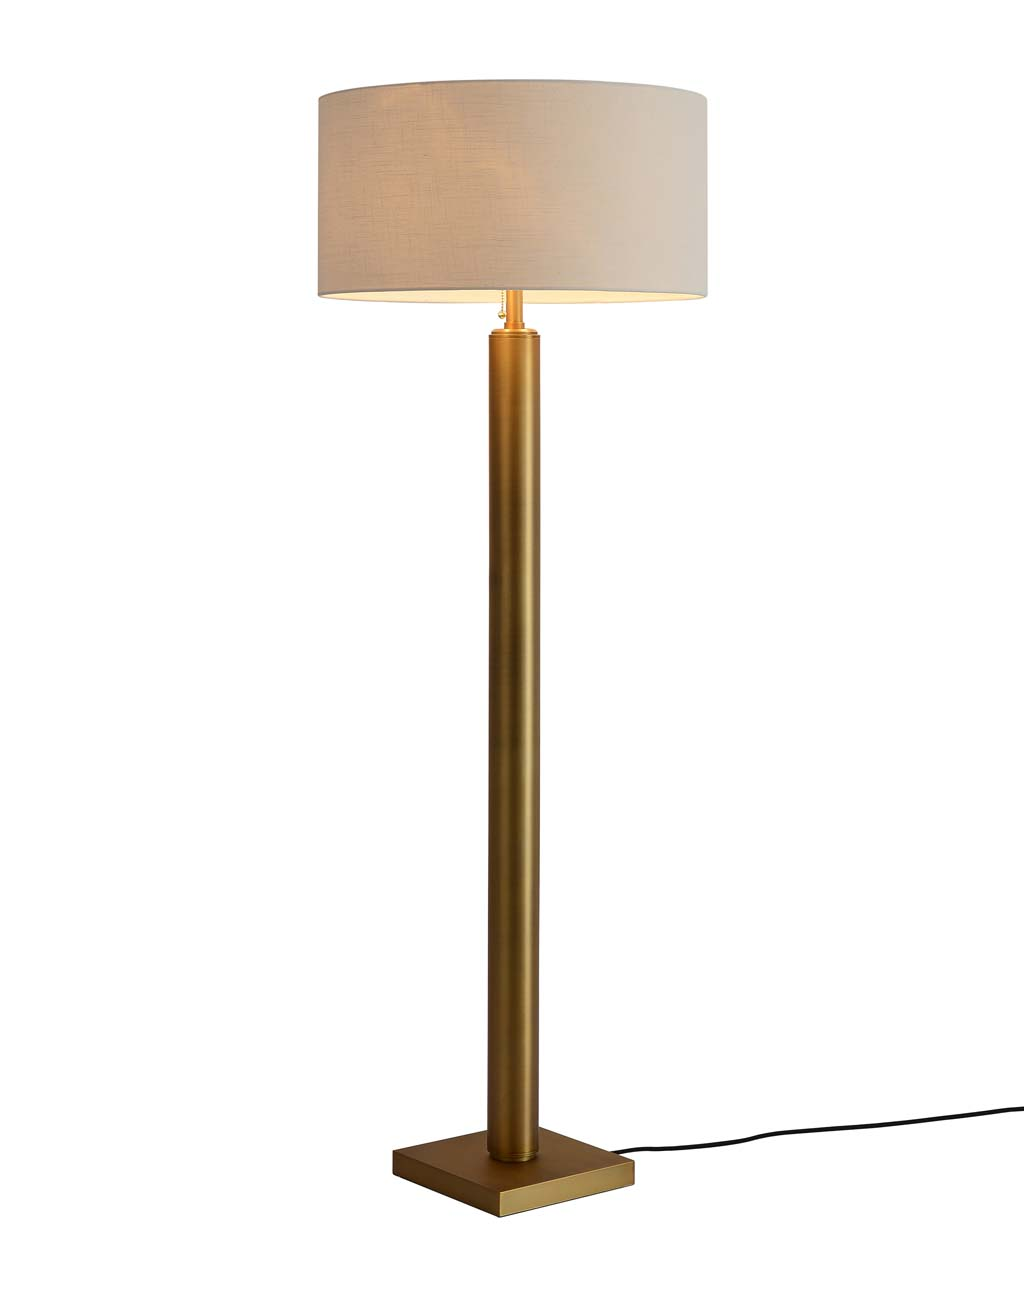 Brentwood Metal Column Floor Lamp, Brushed Brass